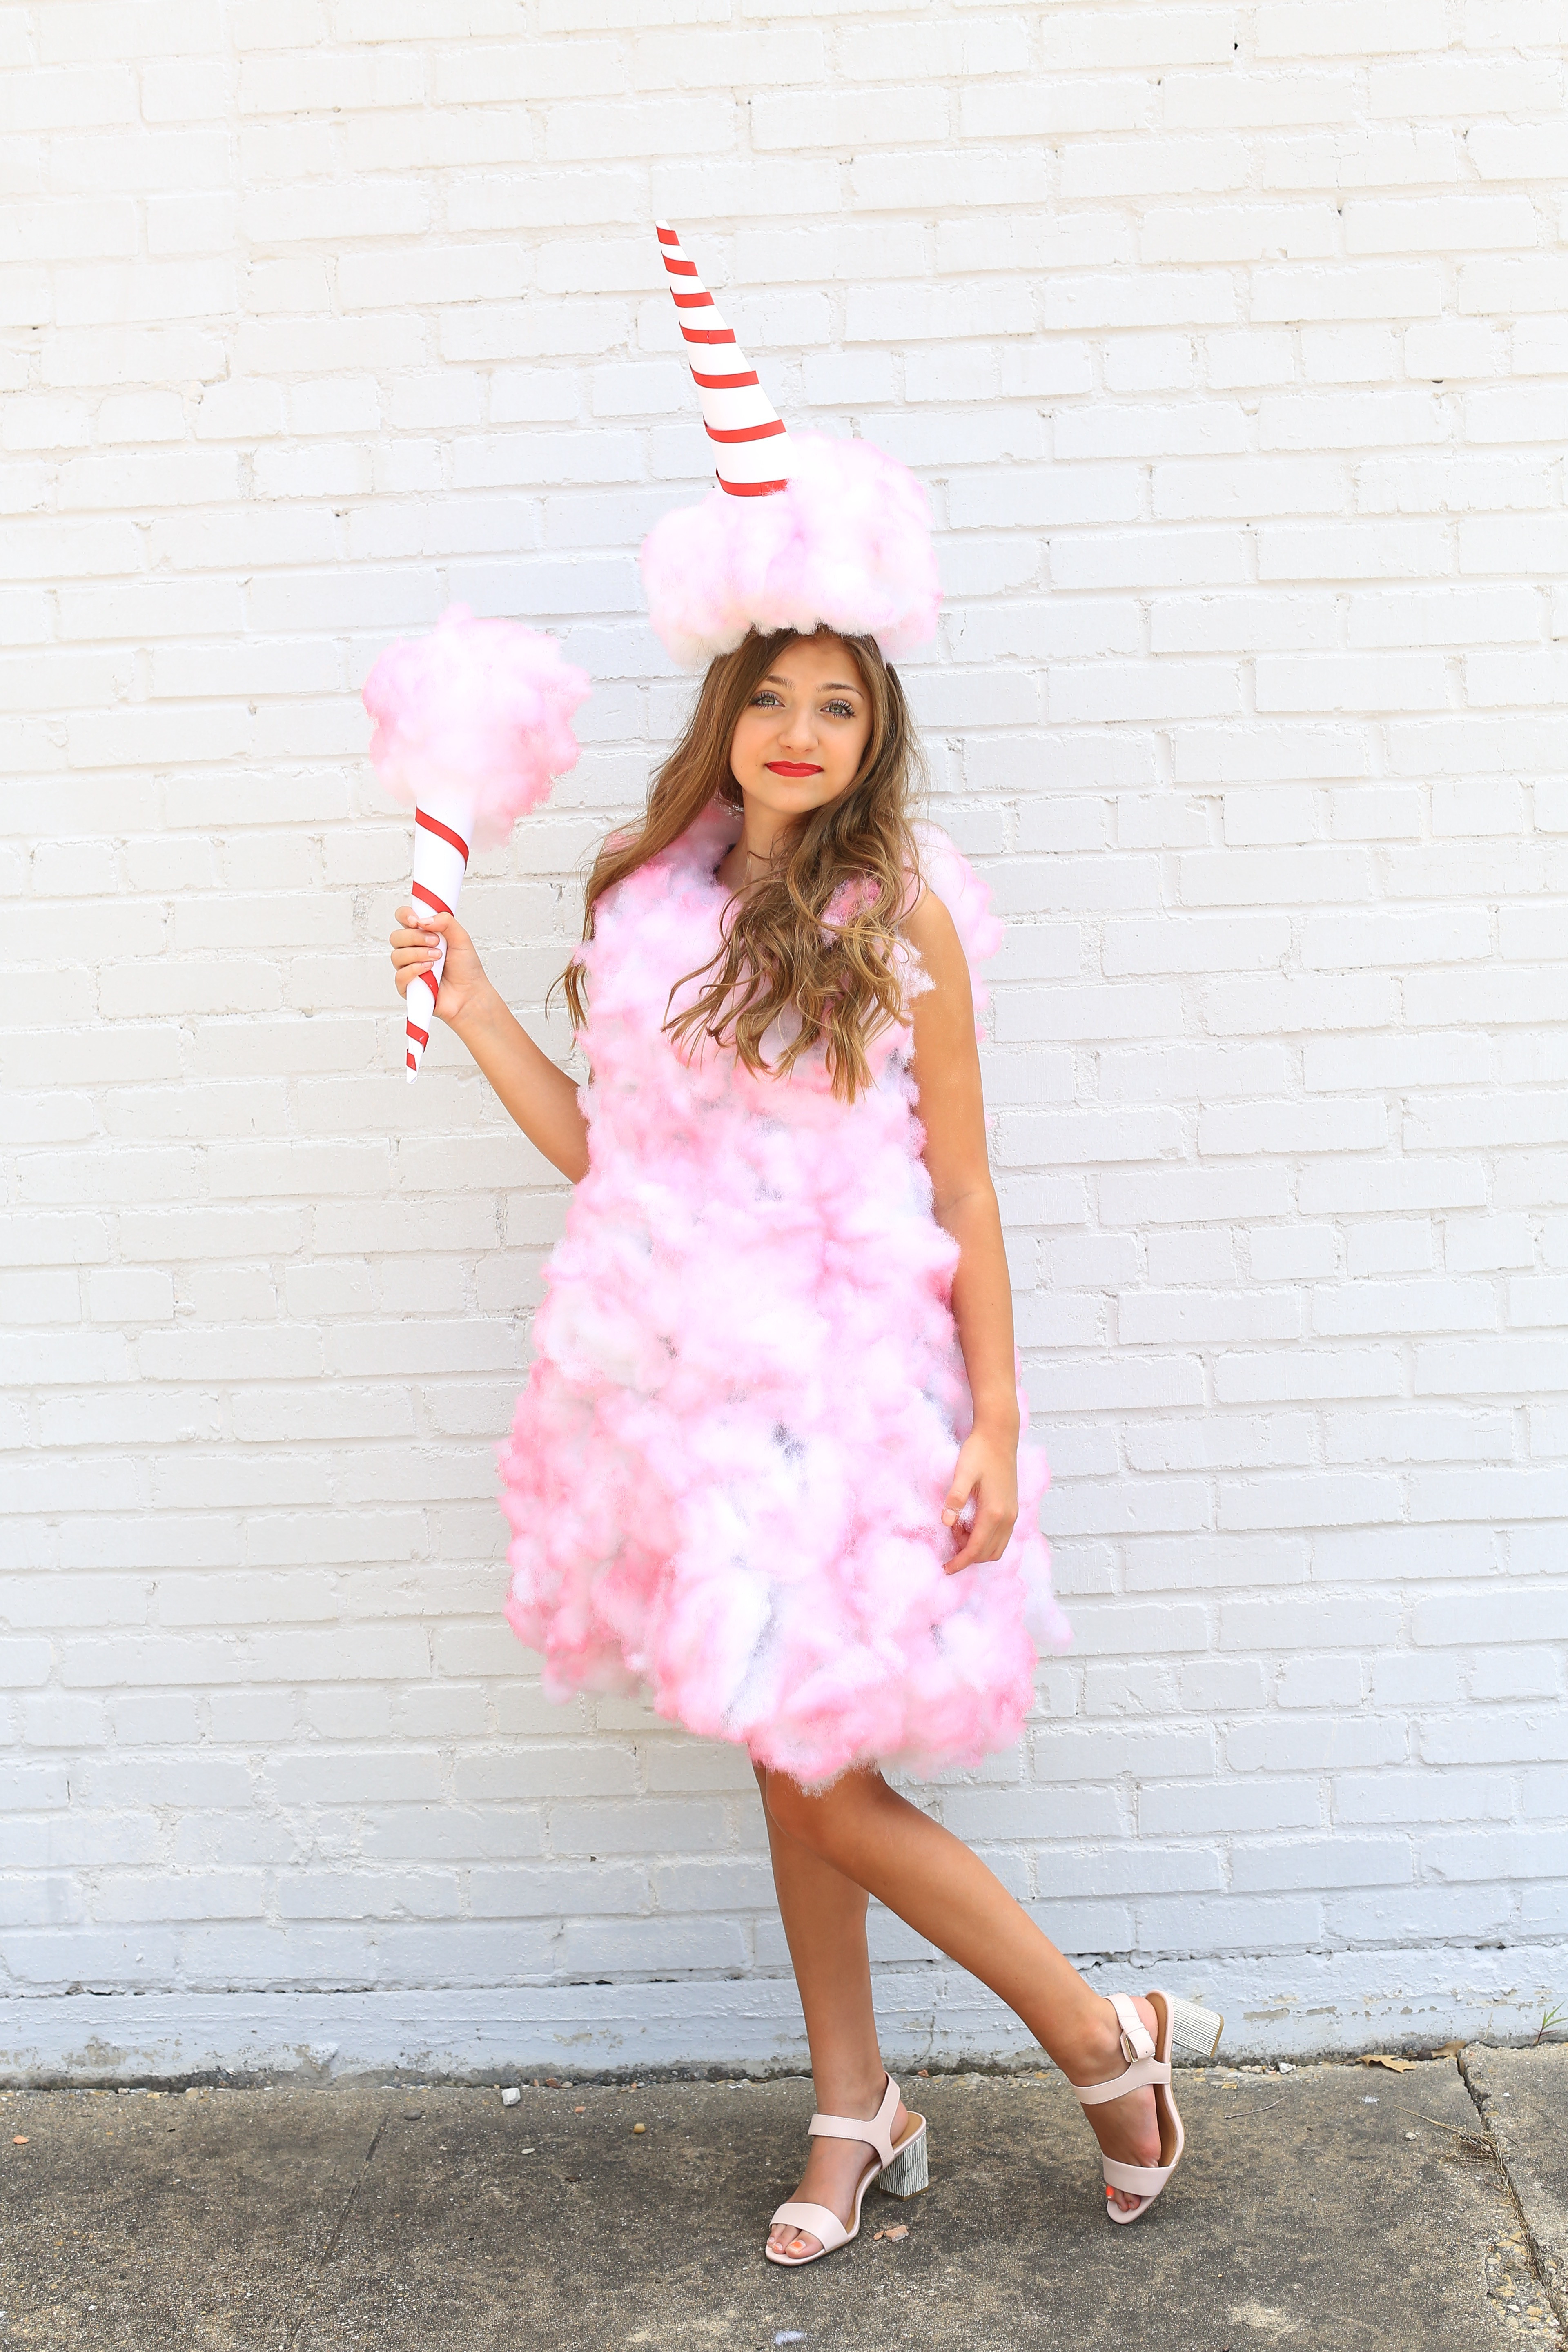 Best ideas about DIY Costumes For Girls . Save or Pin 10 DIY Food Halloween Costumes Kamri Noel Now.